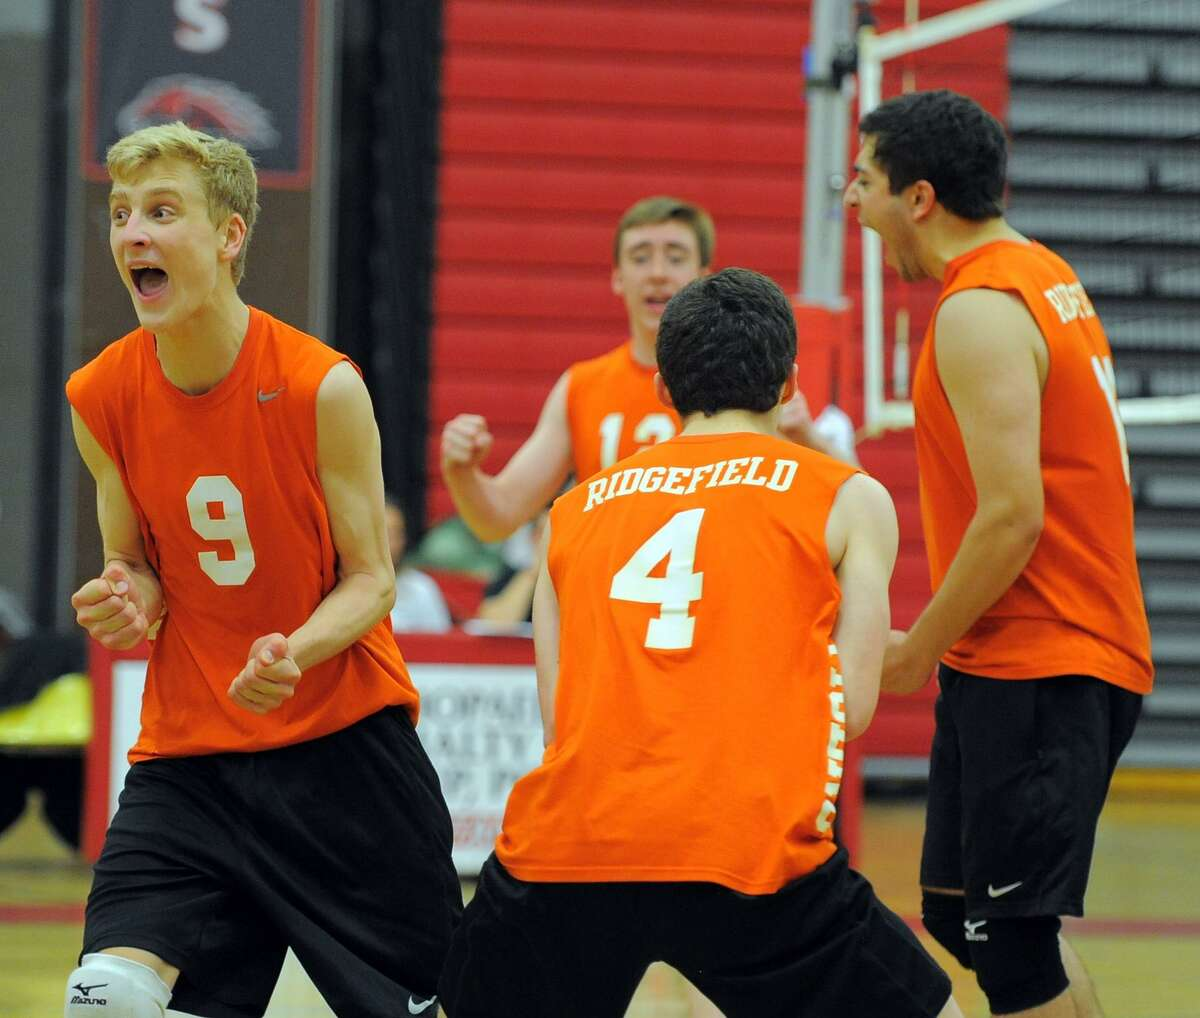 Ridgefield defeated Darien 3-2 in the CIAC Class L volleyball championship at Fairfield Warde High School on June 9, 2016.